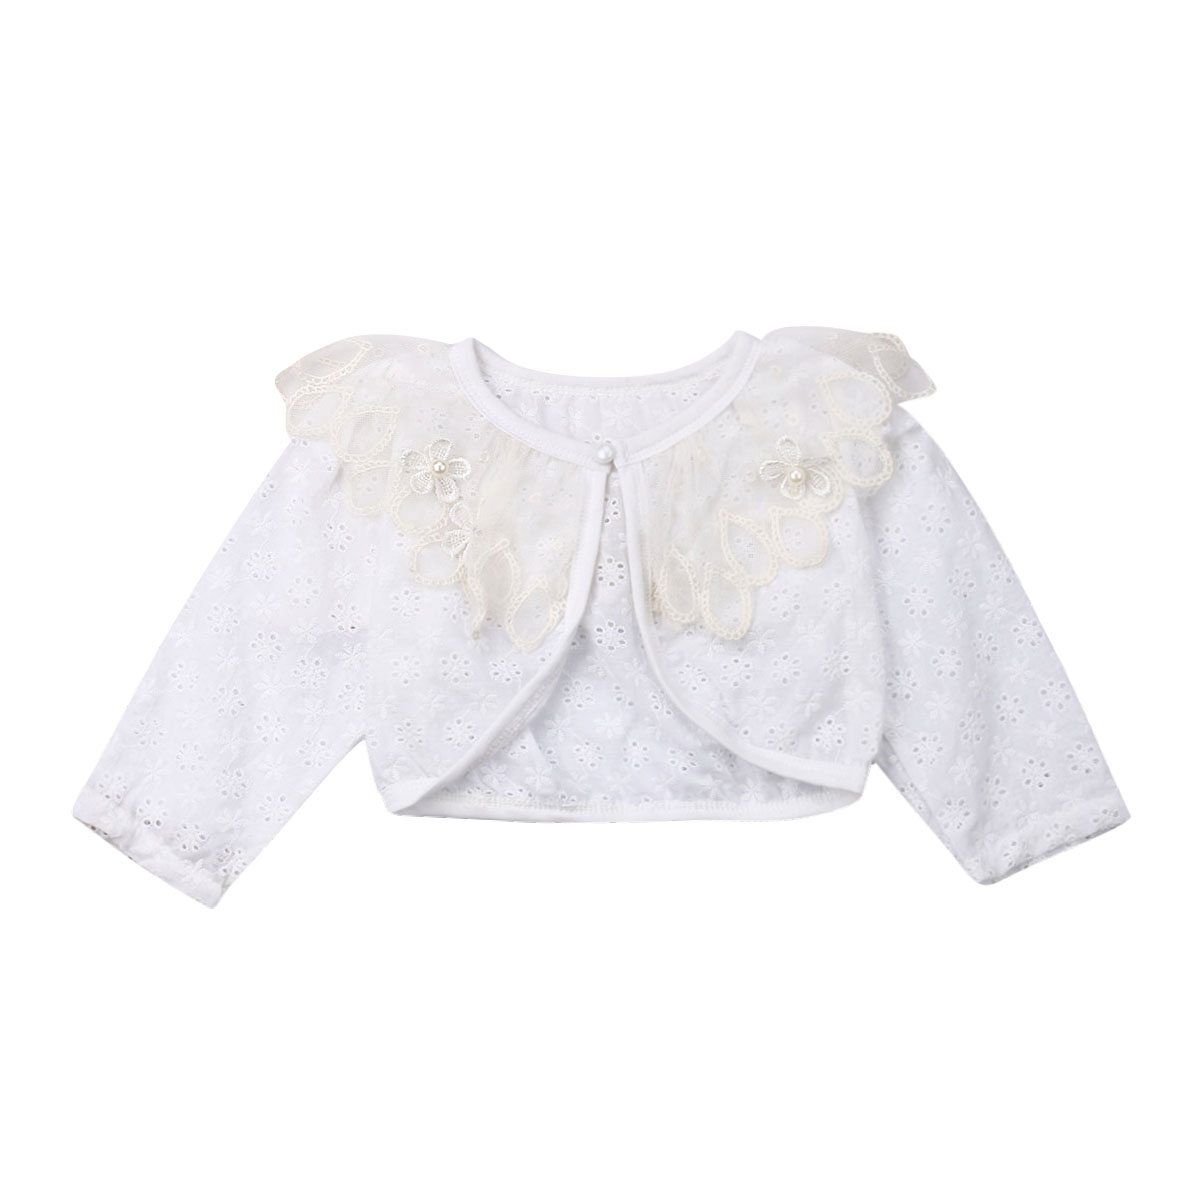 Girls Faux Fur Bolero Shrug Cotton Lace Flower Cardigan Top Party SZ 1-12 Years